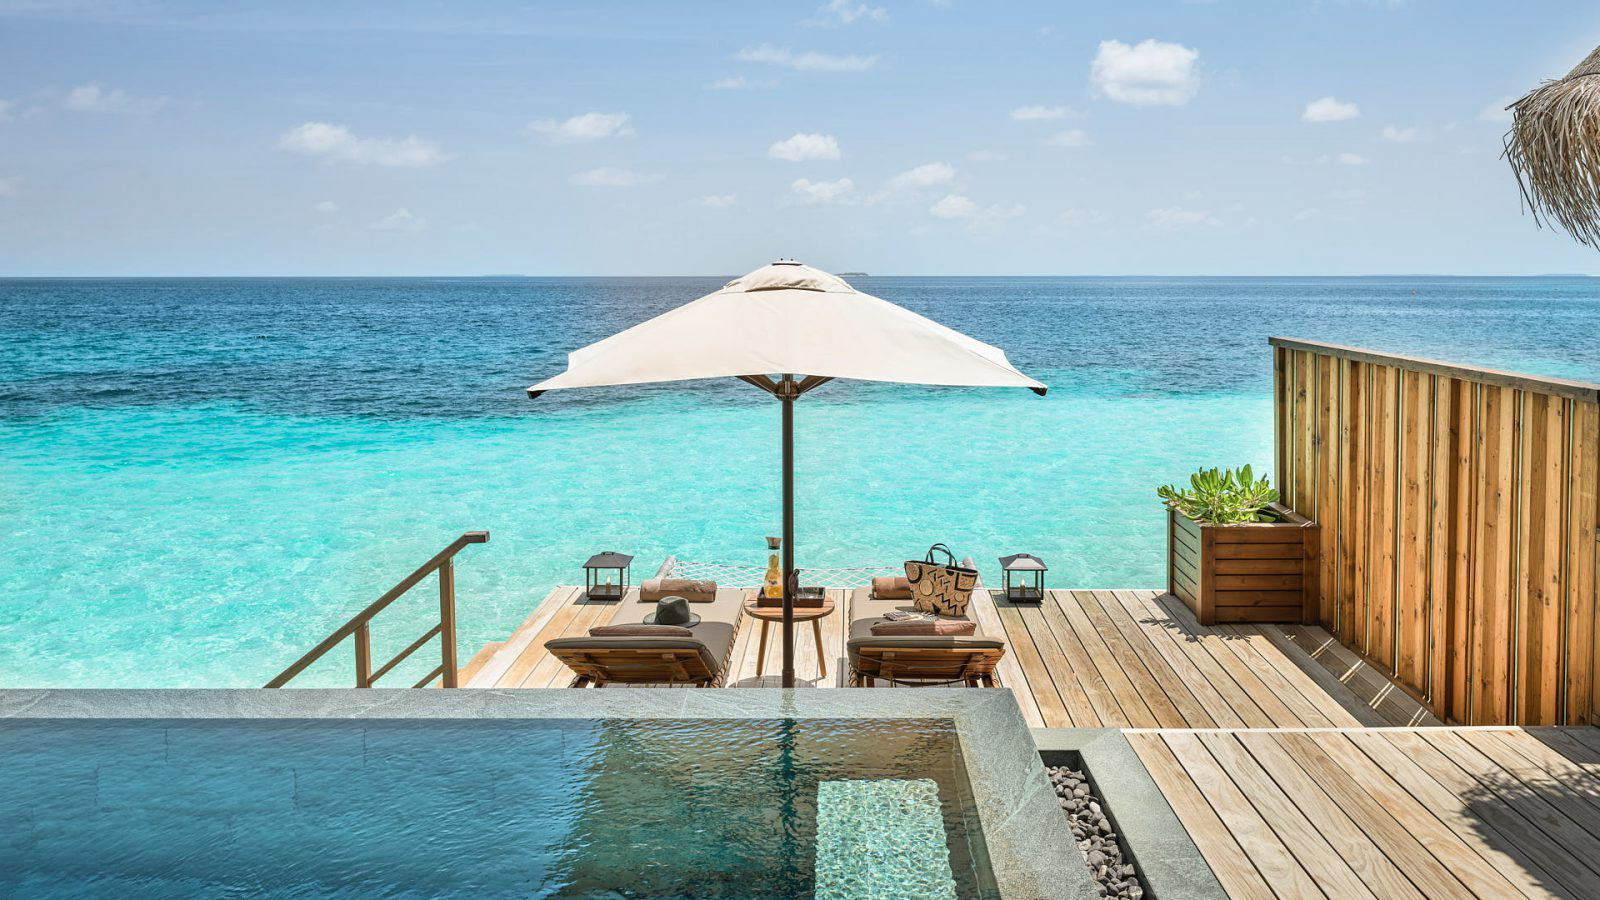 Joali Maldives Luxury Resort – Muravandhoo Island, Maldives – Water Villa Infinity Pool Deck